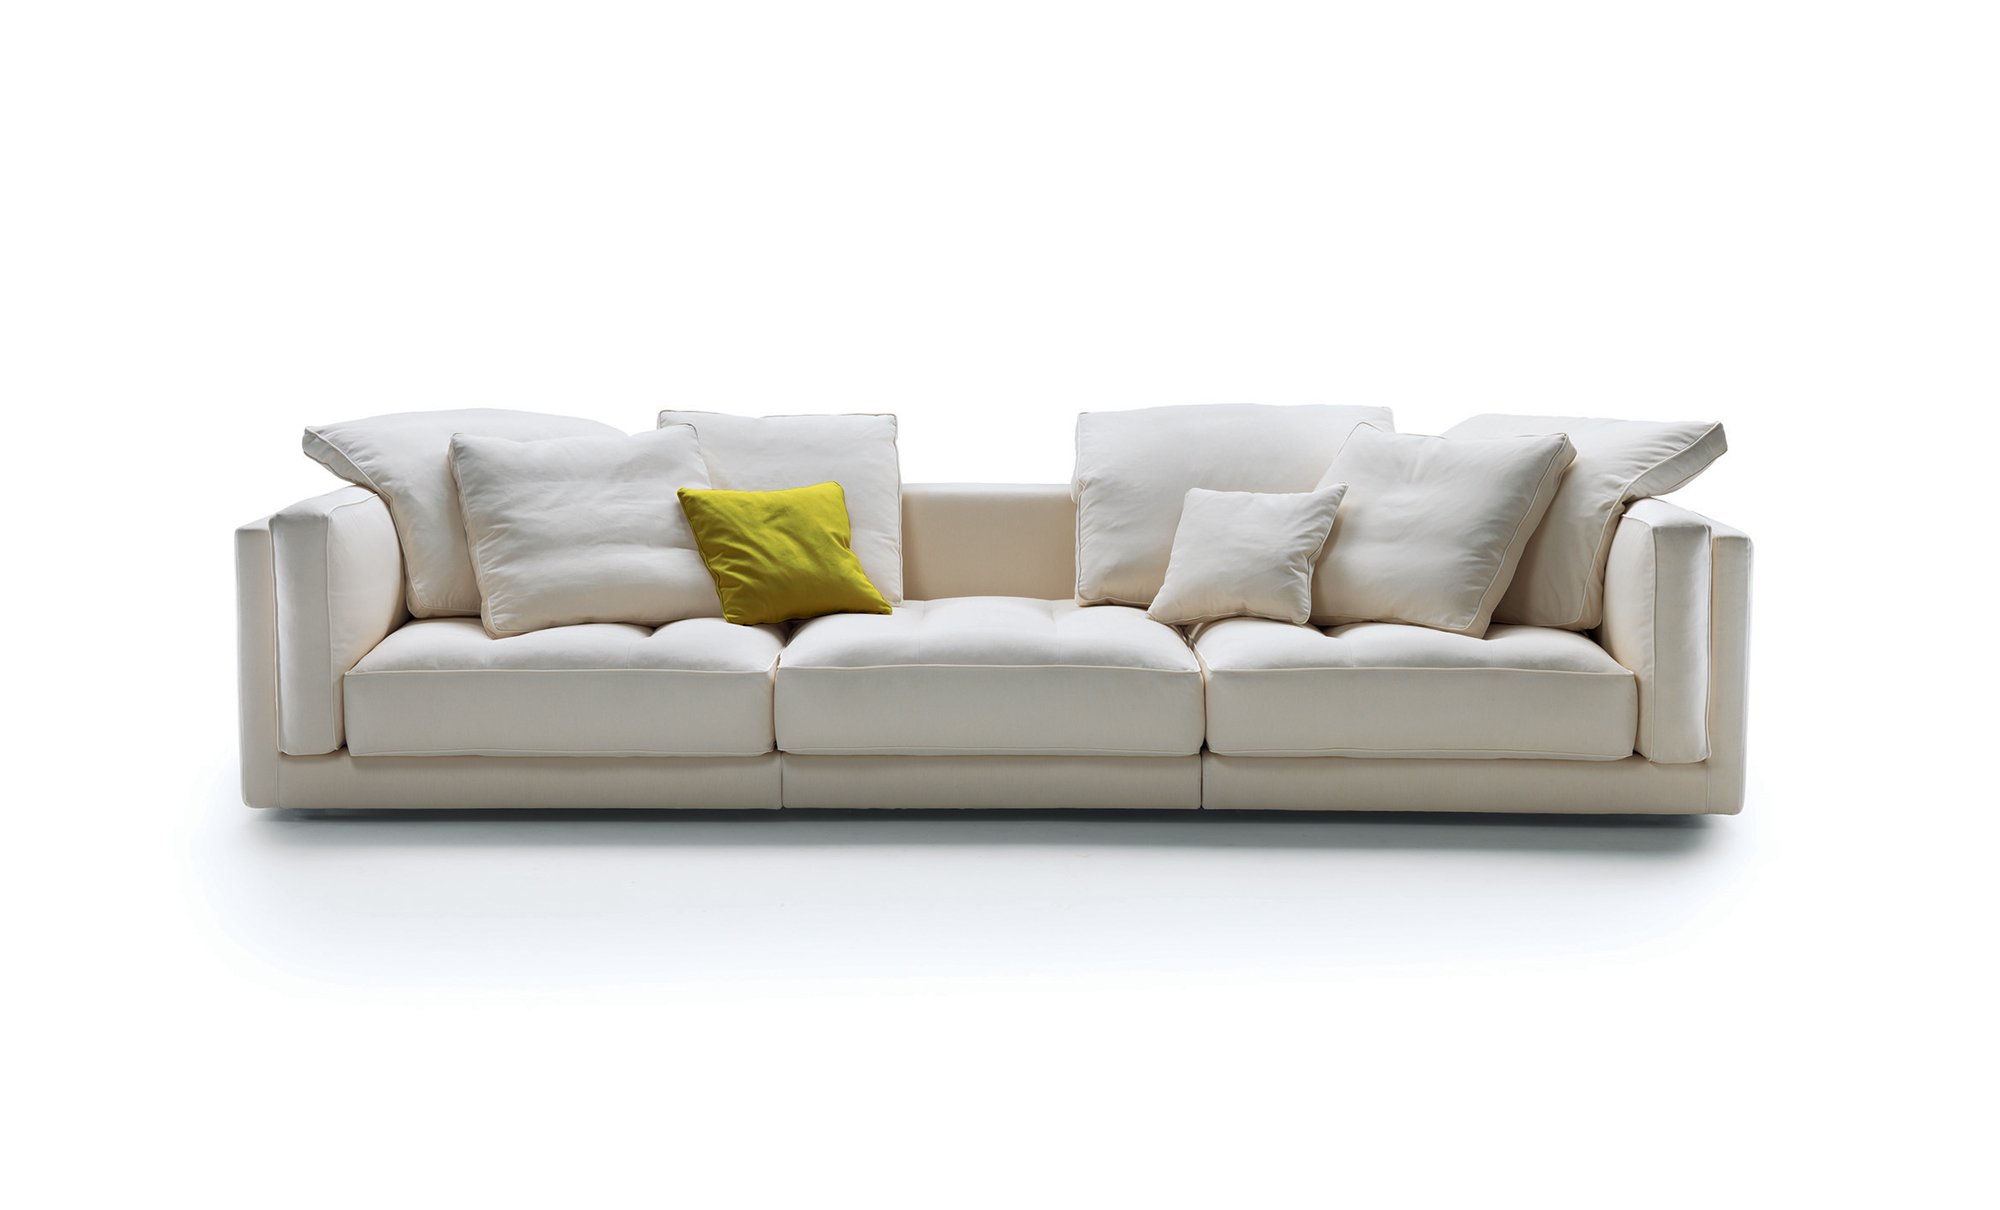 moods 3 seater leather sofa bed cheap 2 lucien by flexform mood fanuli furniture